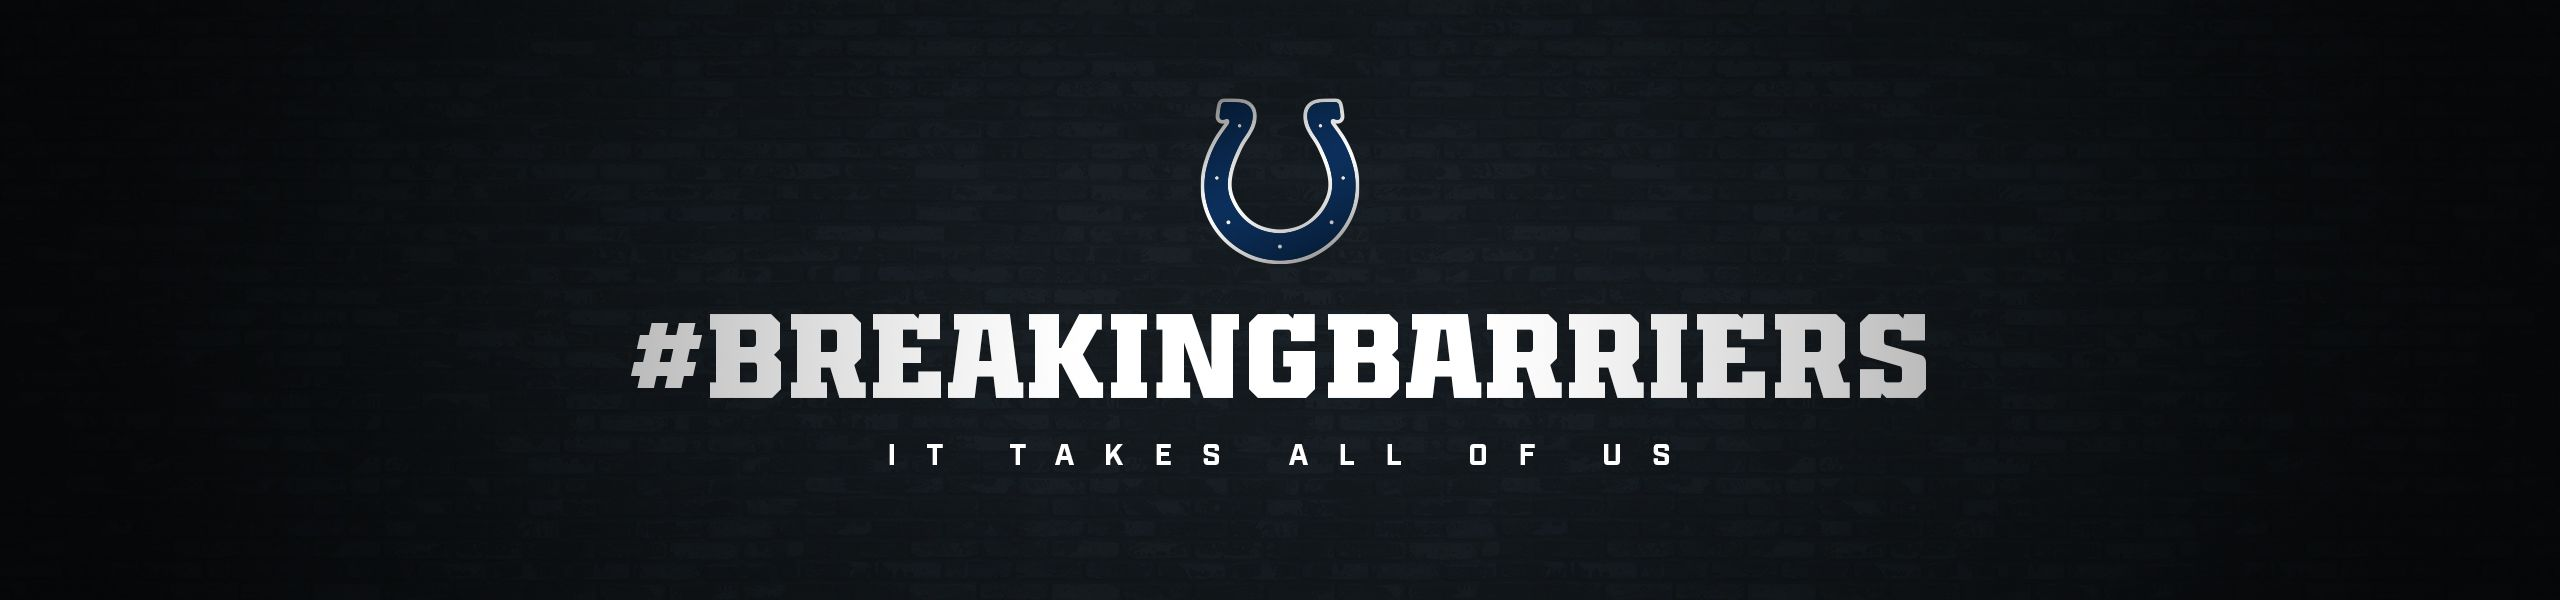 Indianapolis Colts Breaking Barriers Social Justice Initiative  It Takes All Of Us